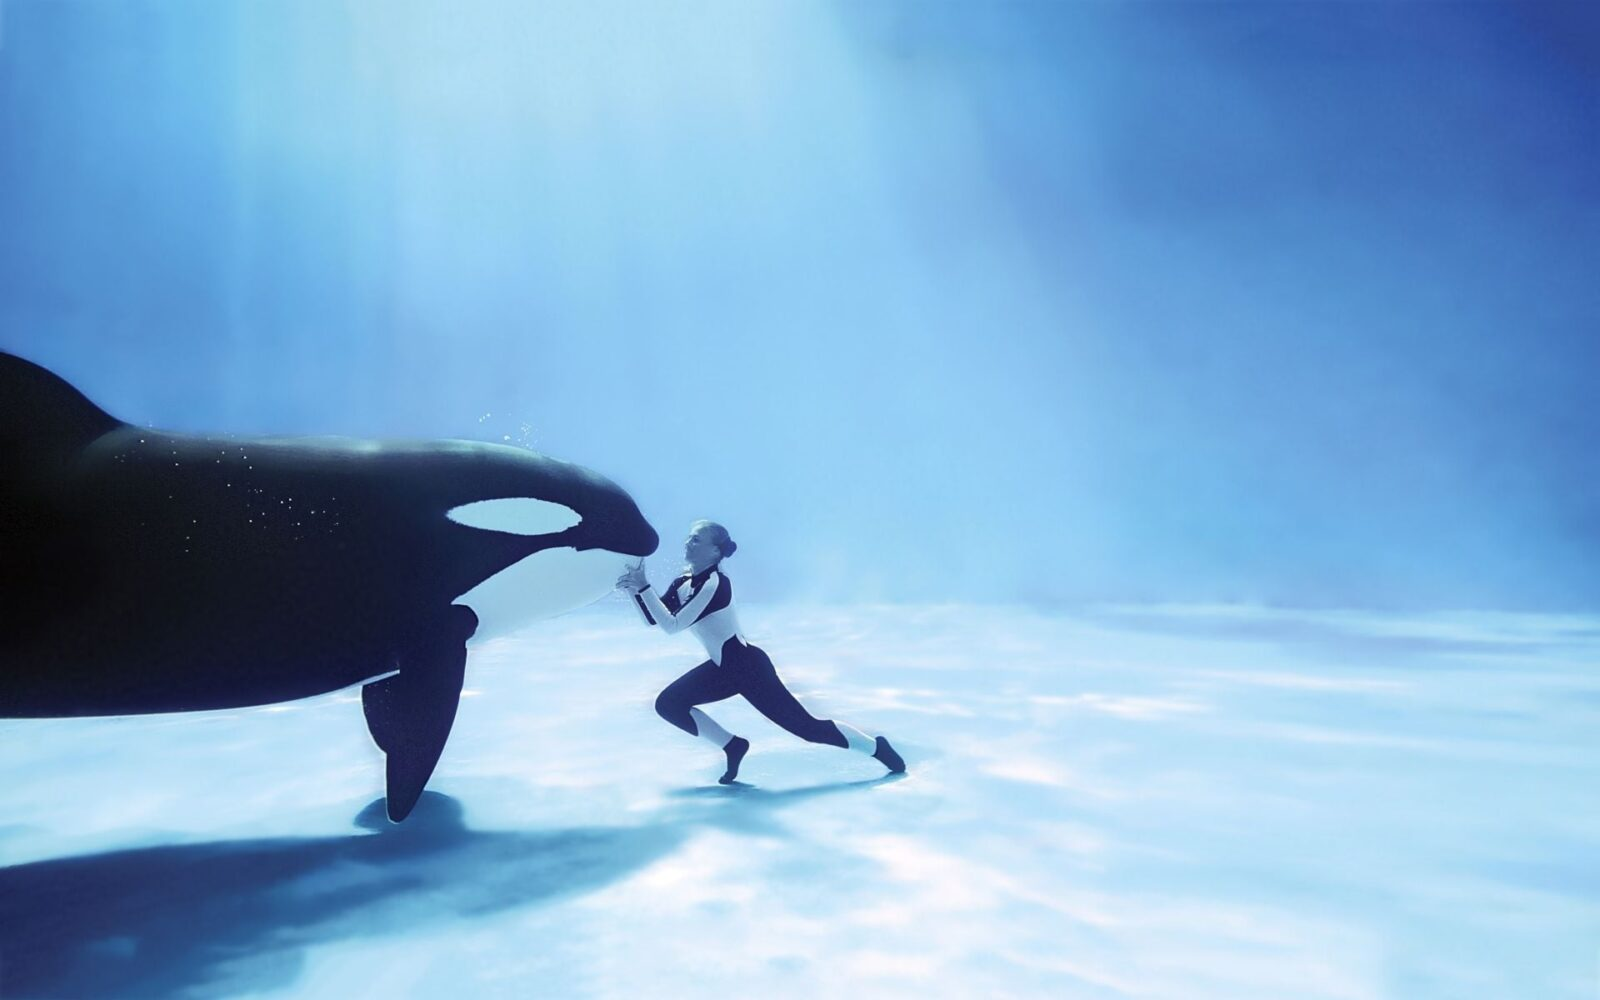 All Anime In One Wallpaper Orca Killer Whale Hd Wallpapers Download